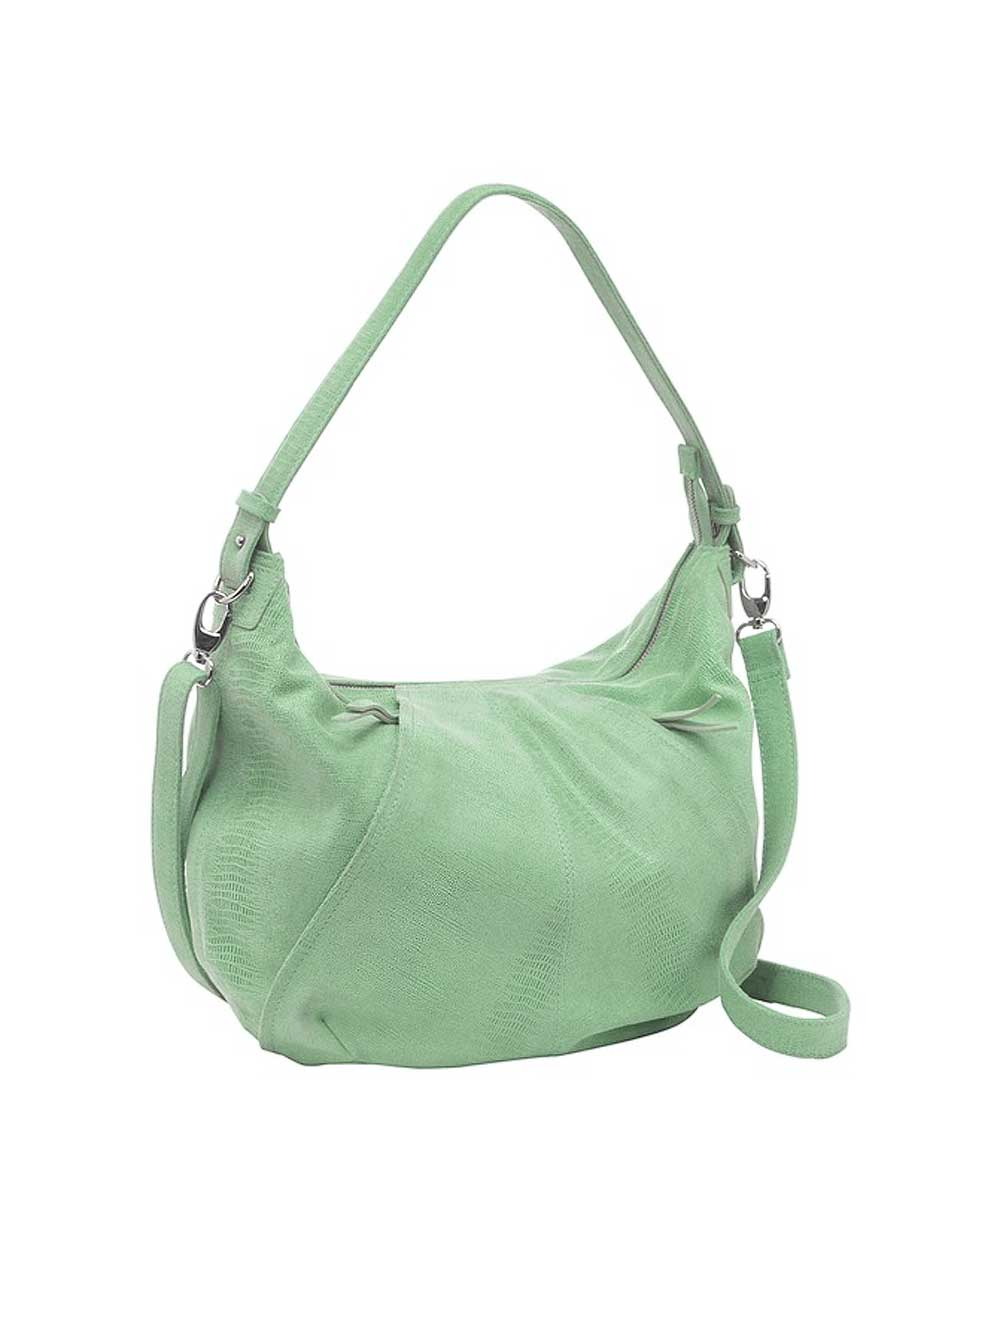 Betty Barclay Leder-Handtasche jade